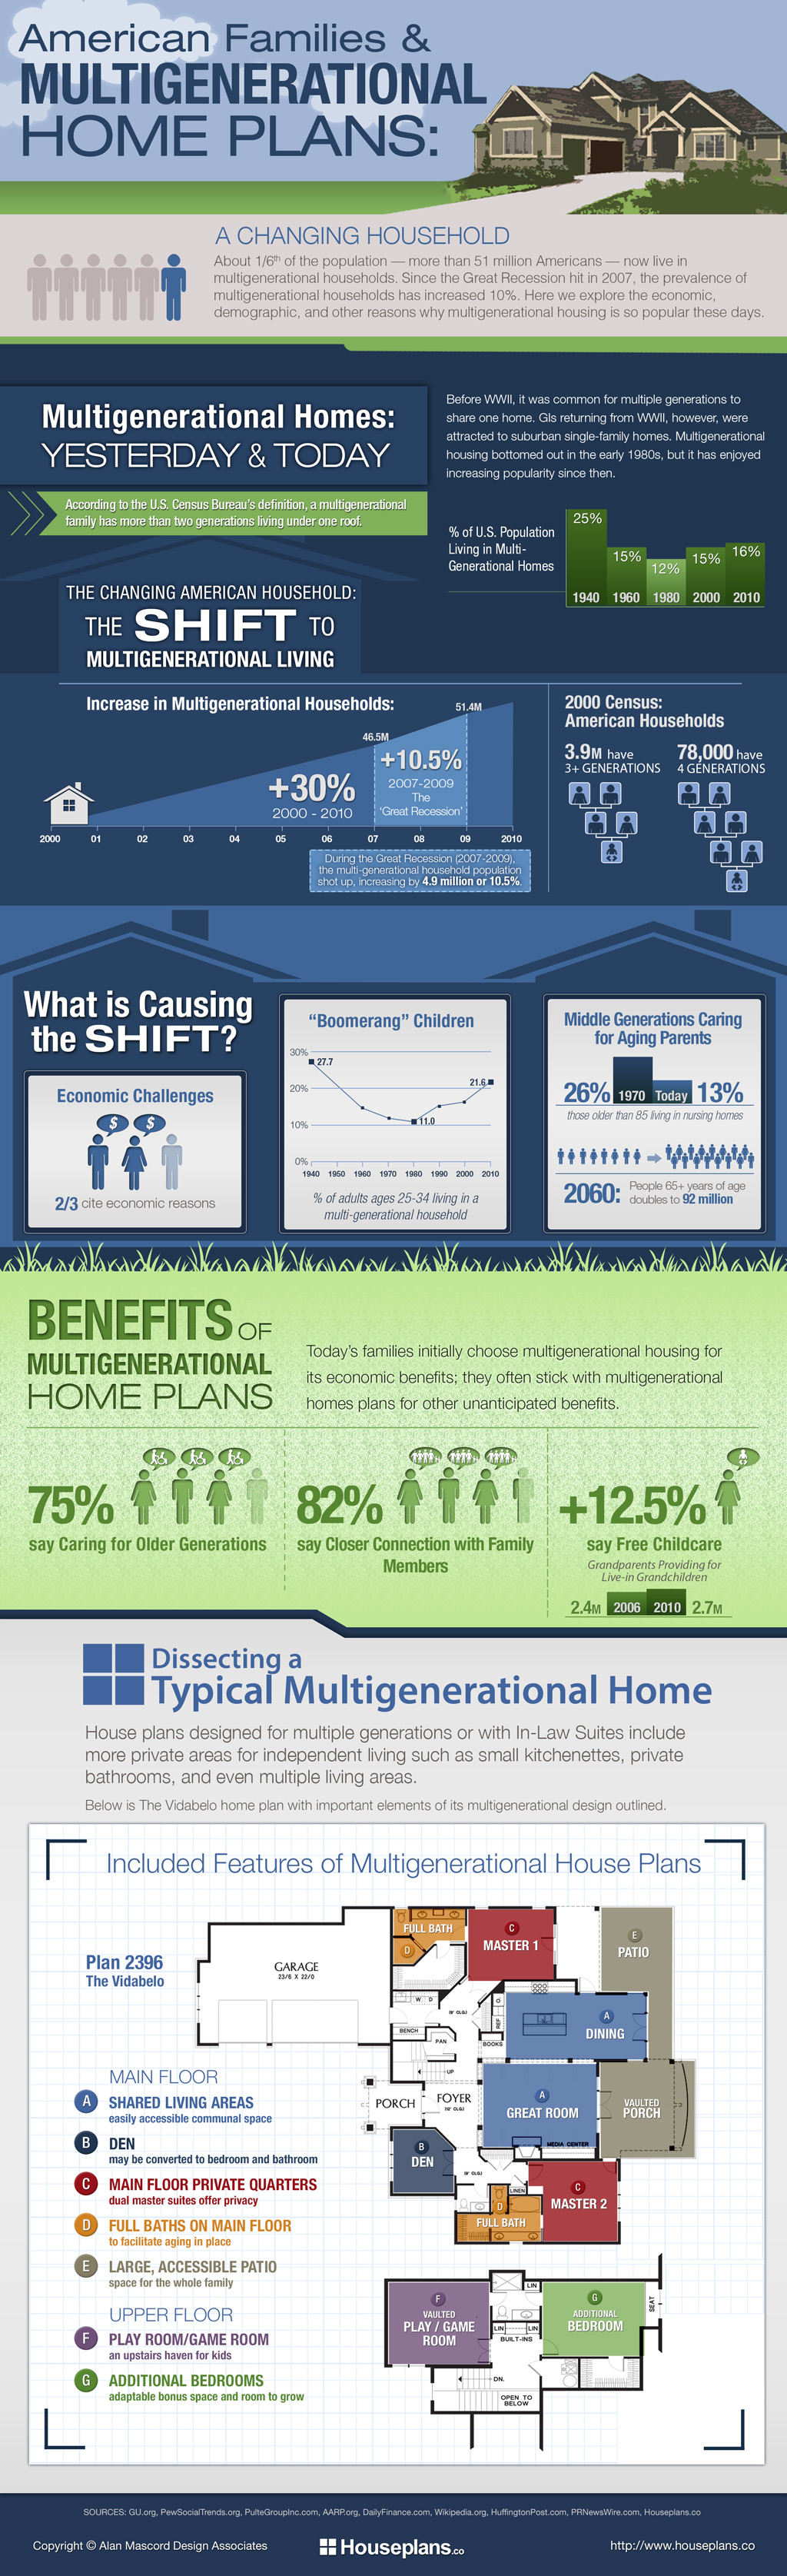 American families multigenerational home plans infographic for Houseplans co